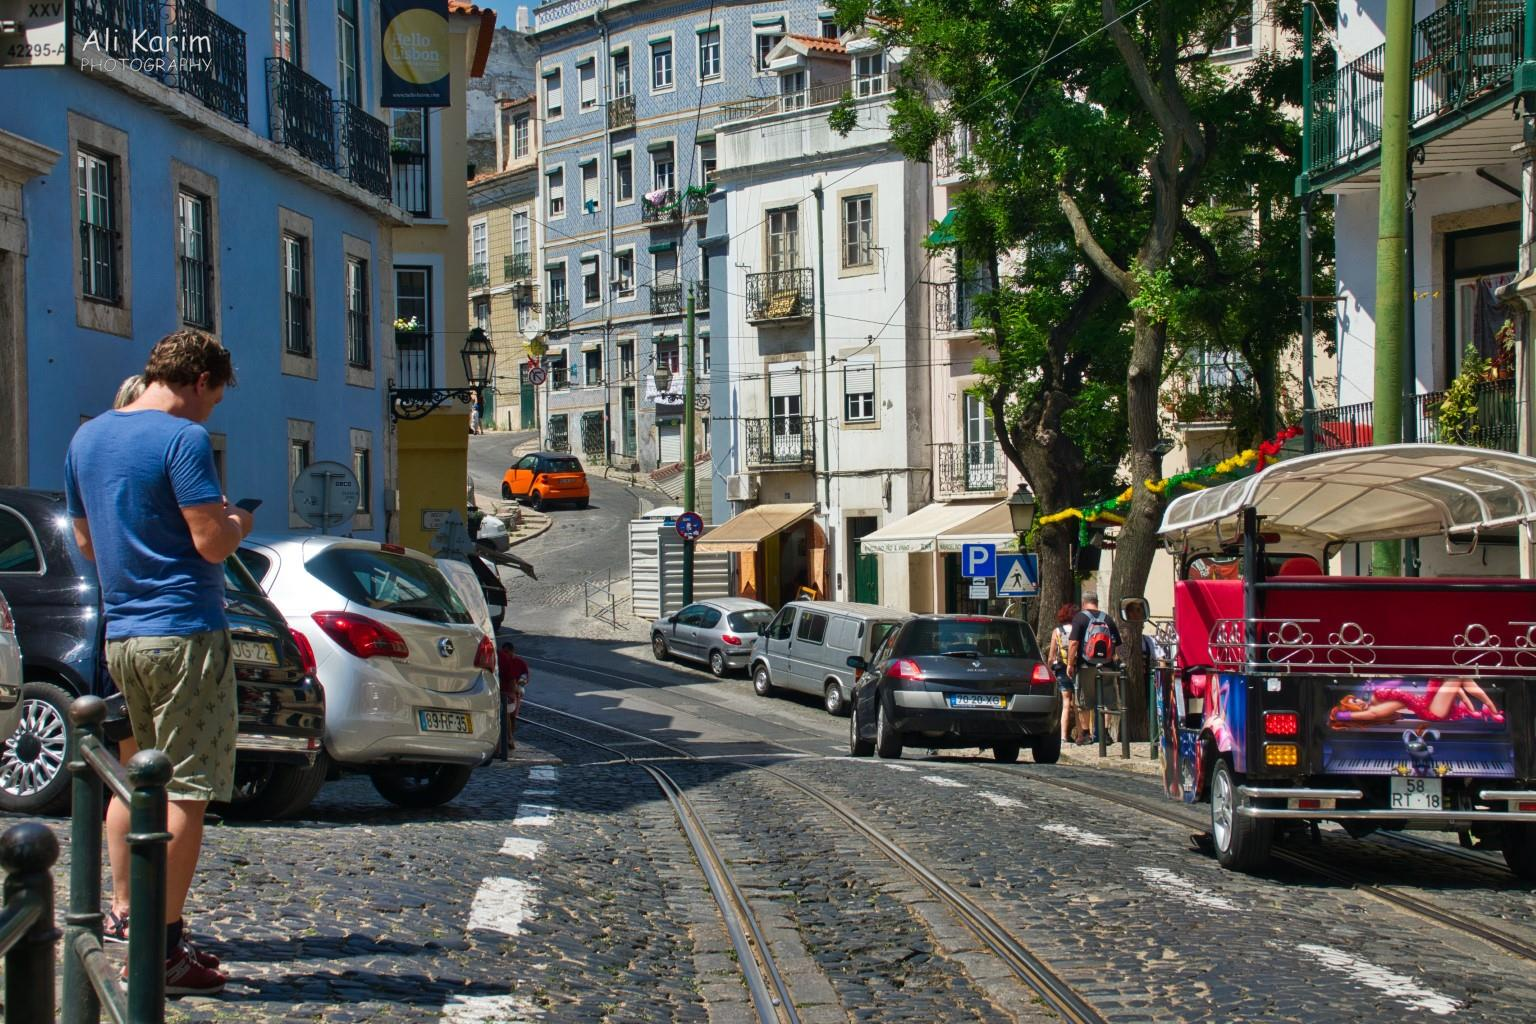 Lisbon Portugal: Narrow ancient cobblestone roads shared by trams, people and cars in Alfama